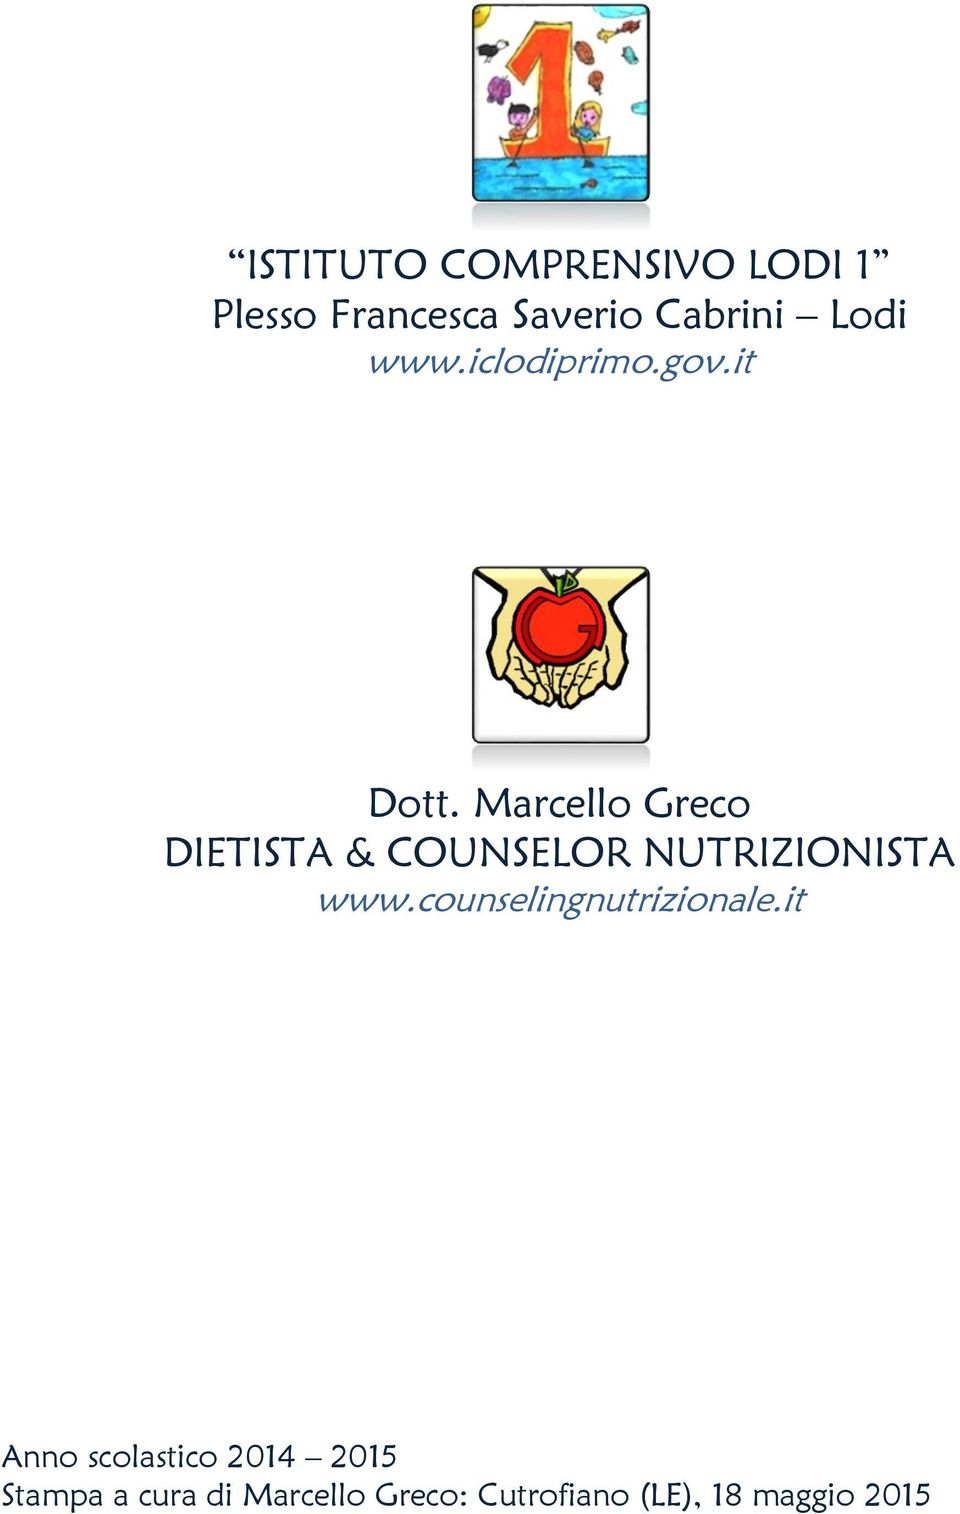 DIETISTA & COUNSELOR NUTRIZIONISTA www.